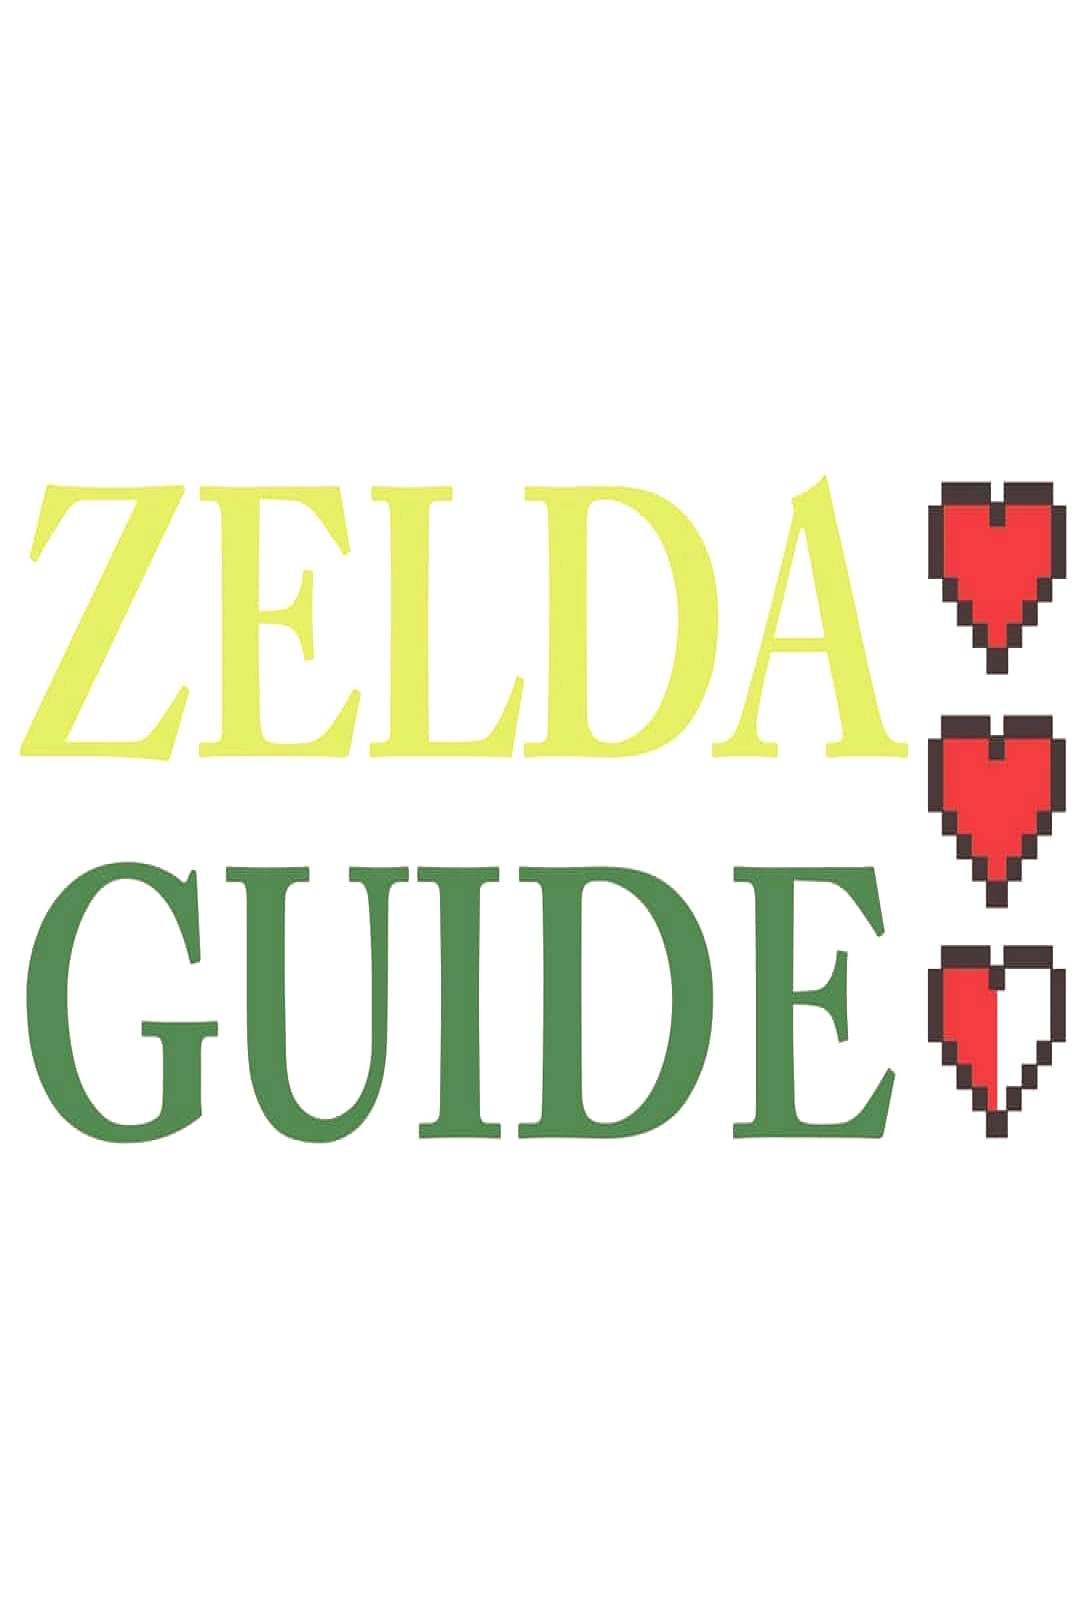 #challenge #possible #favorite #ocarina #zelda #guide #time #text #that #says #logo #one #is #my #of Zelda Guide logo challenge. Ocarina of Time is one of my favoriteYou can find Logo ideas and more on our website....